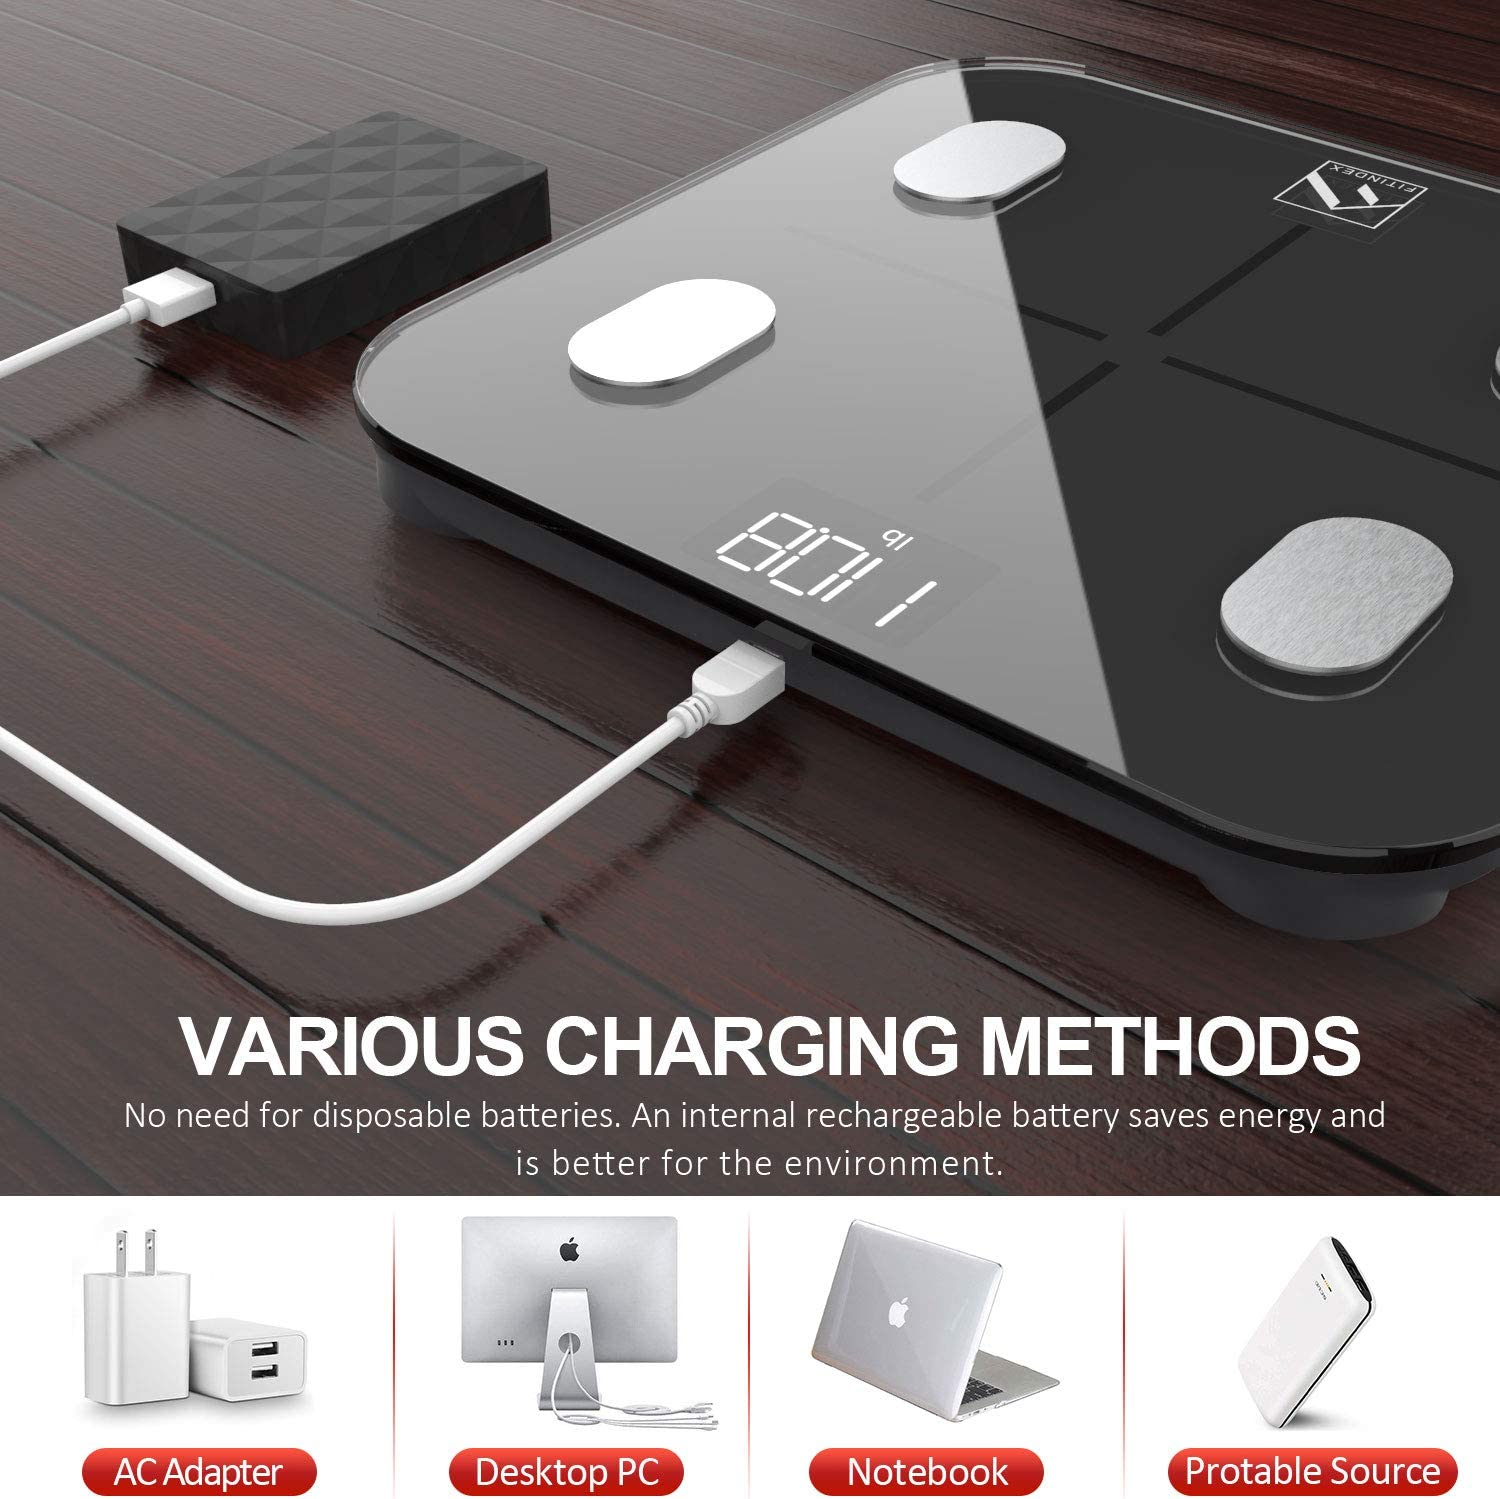 FITINDEX Smart Body Fat Scale, BMI Bathroom Scale, Digital Body Composition Analyzer Rechargeable Weight Monitor with App for Smartphone: Health & Personal Care